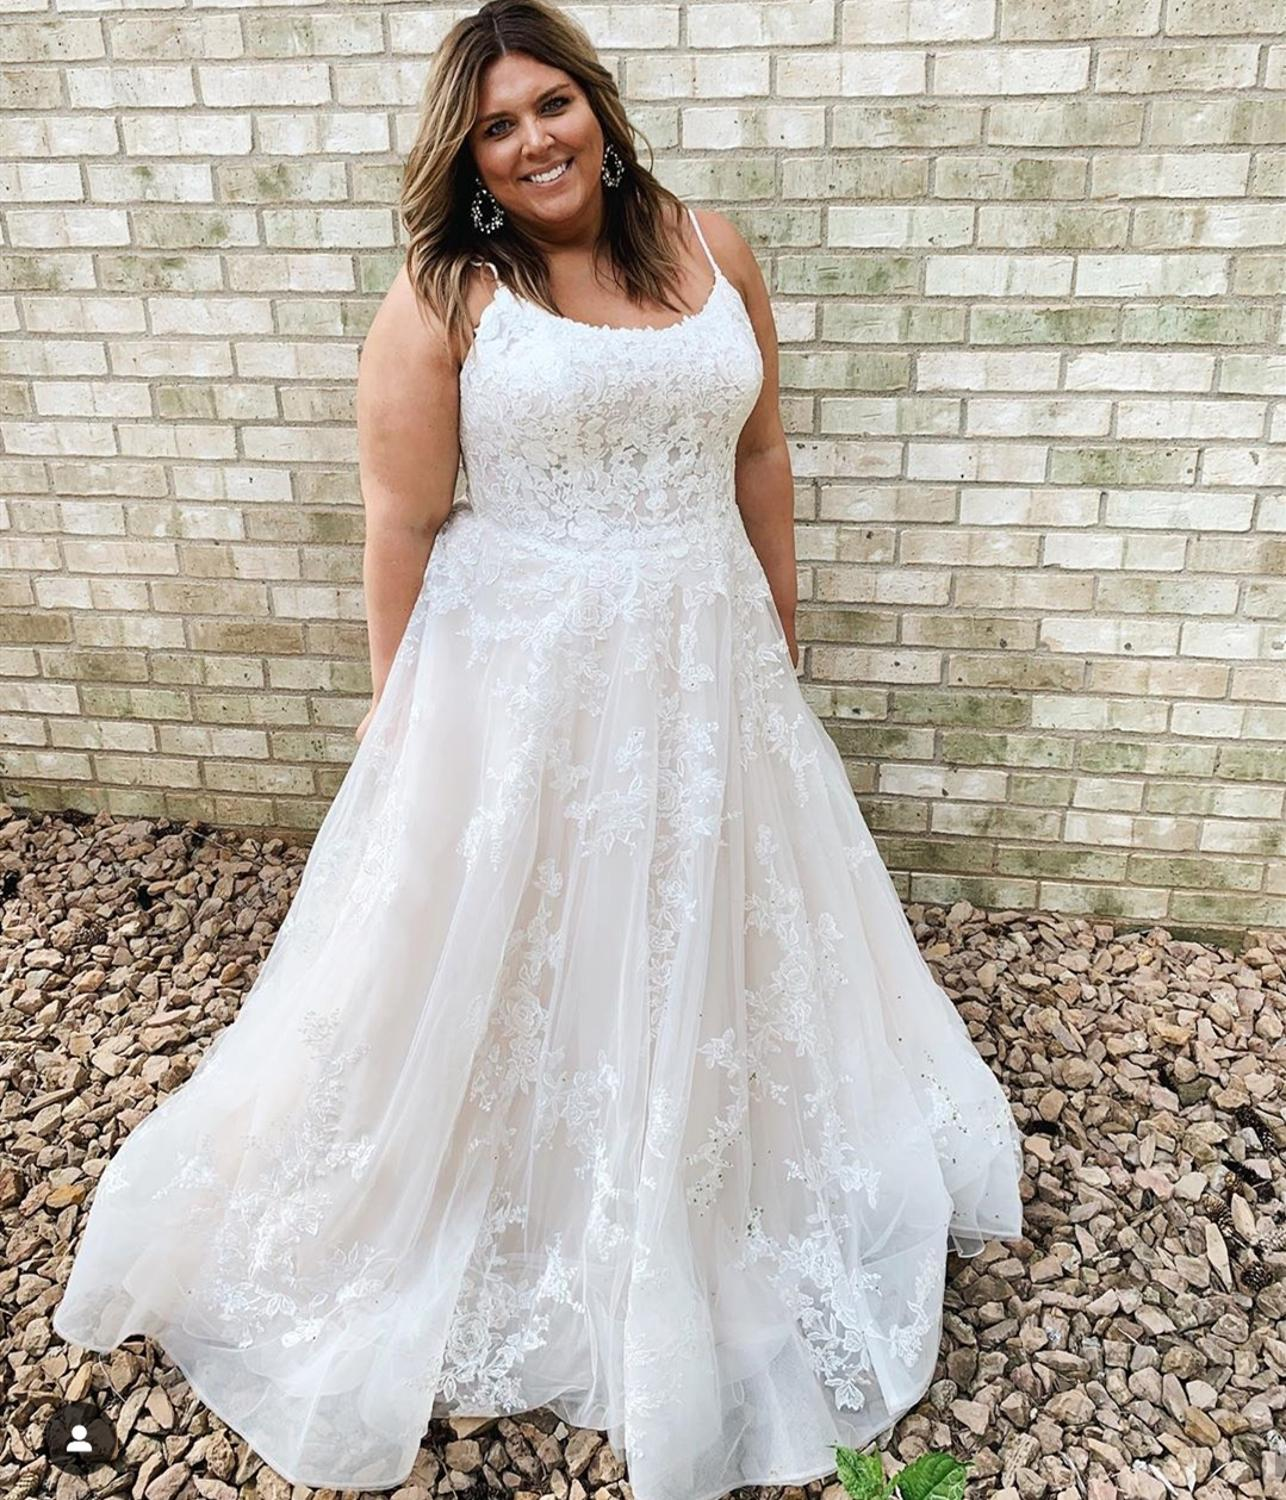 2020 Plus Size Wedding Dress A-Line Elegant Scoop Floor Length Spaghetti Strap Bridal Gowns Large Size Sleeveless  For African